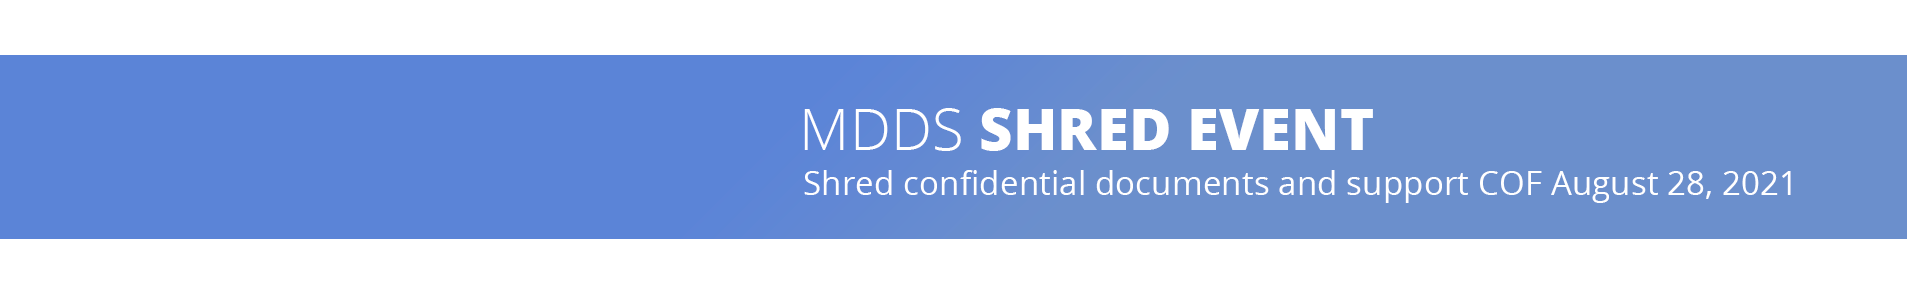 MDDS shred event